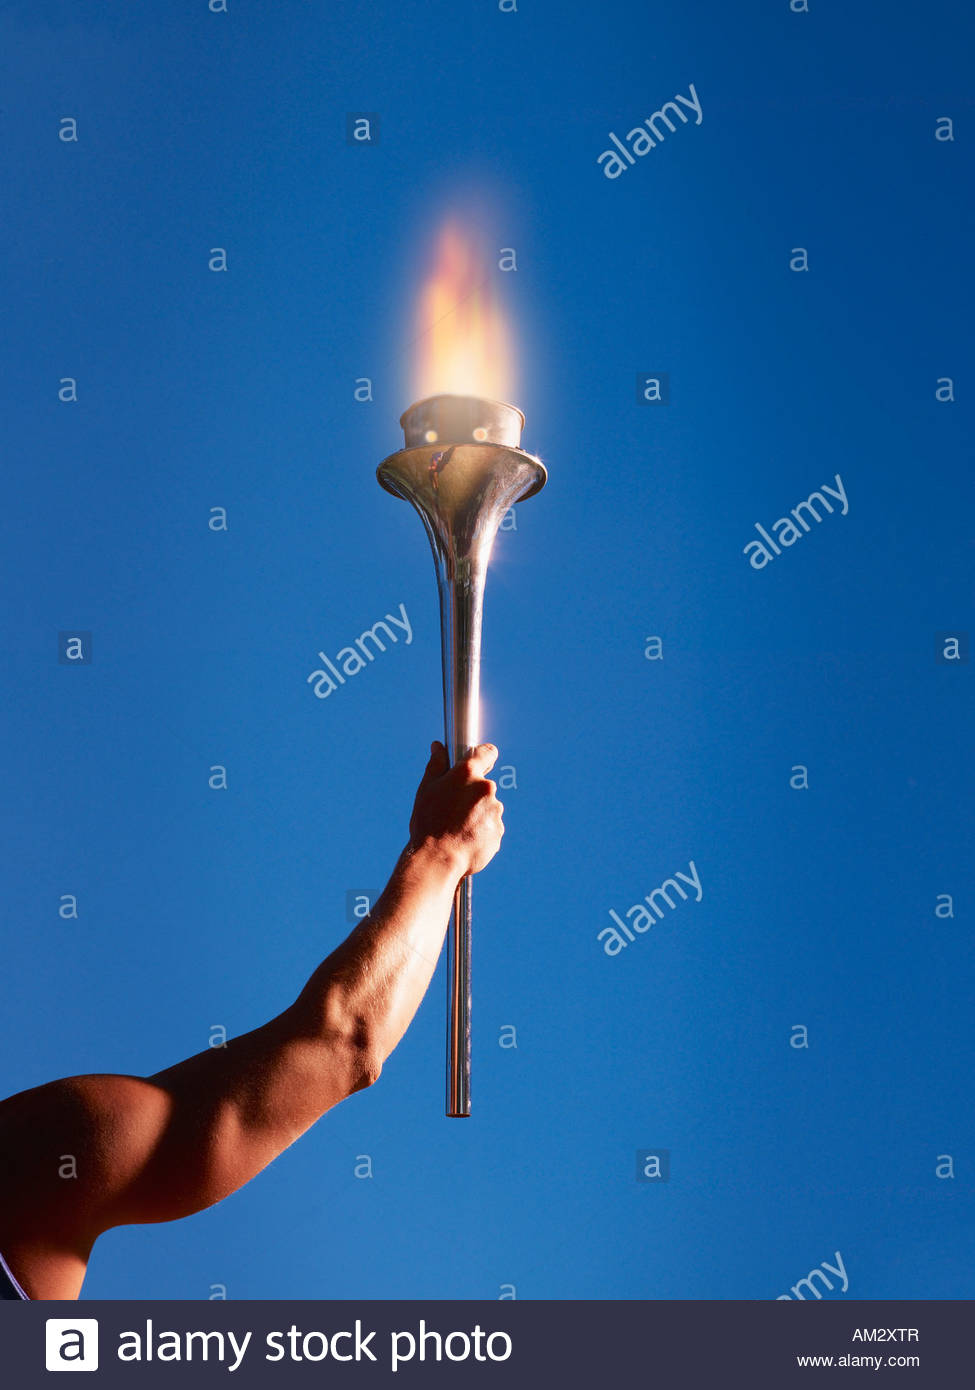 Athlete's arm holding up a torch - Stock Image